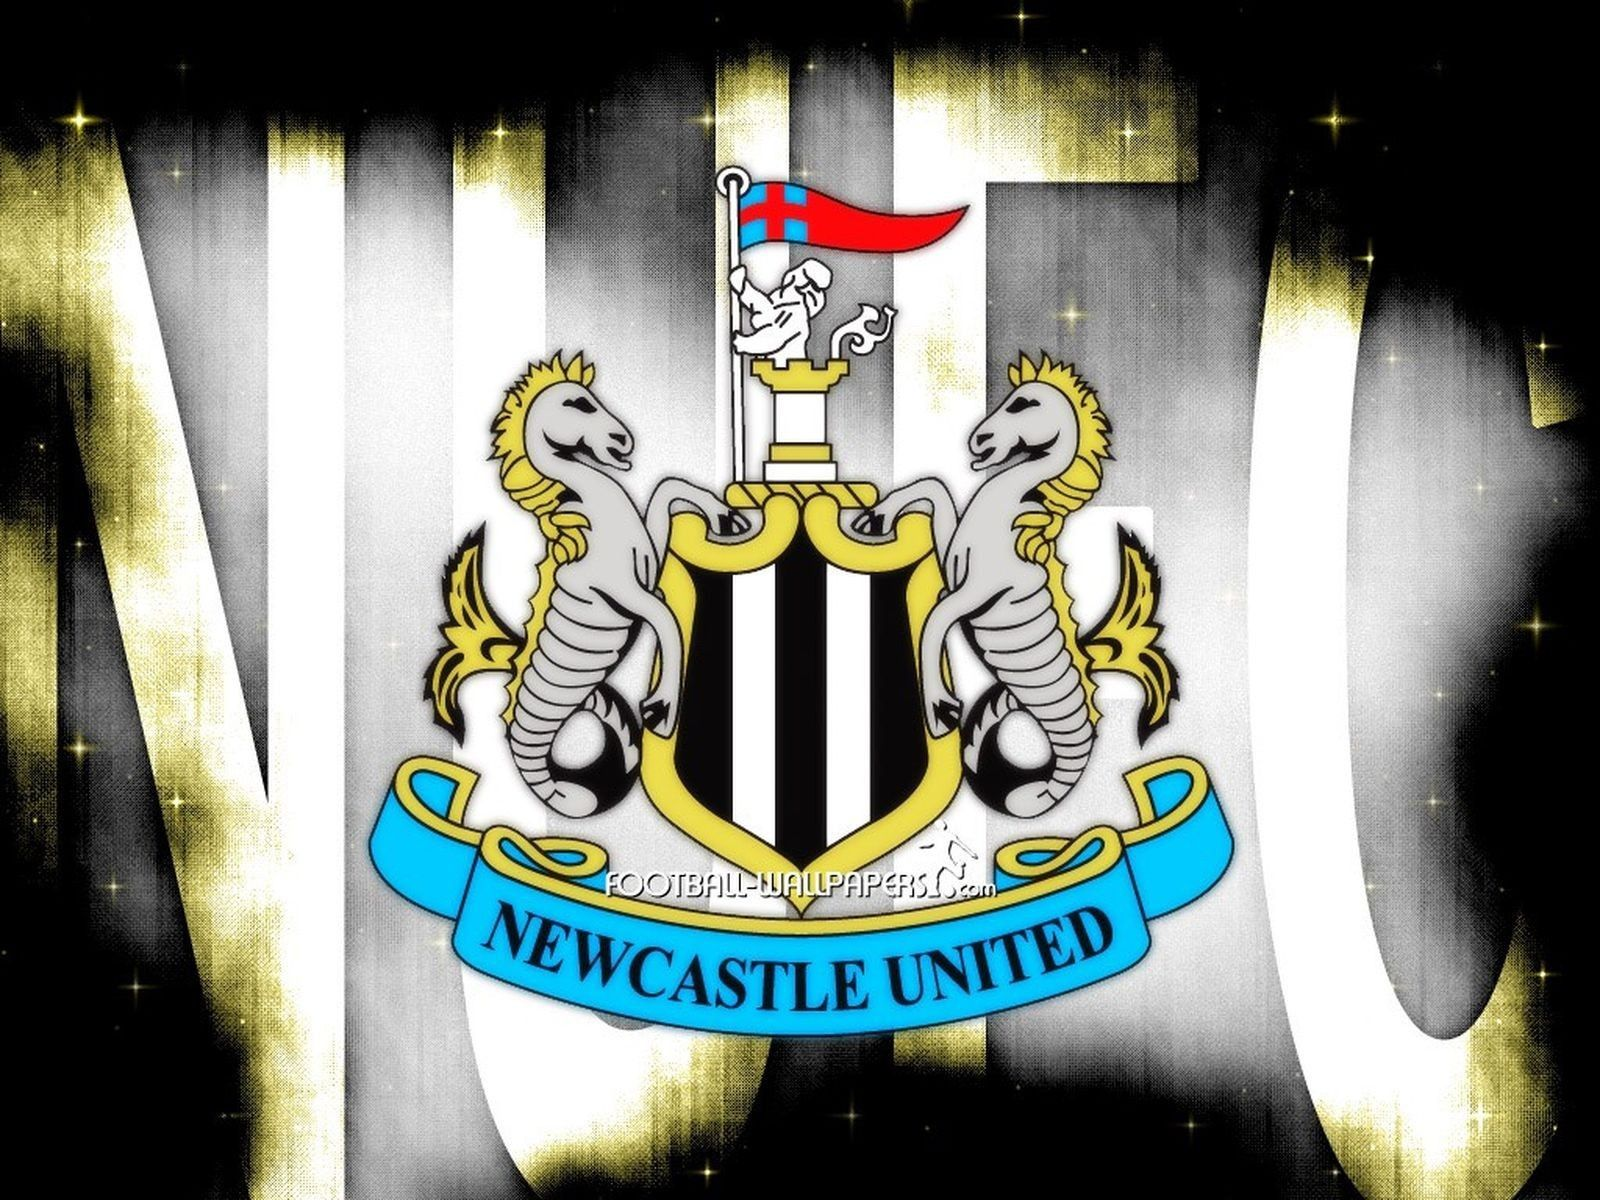 Download newcastle united wallpapers for your mobile phone 1600x1200